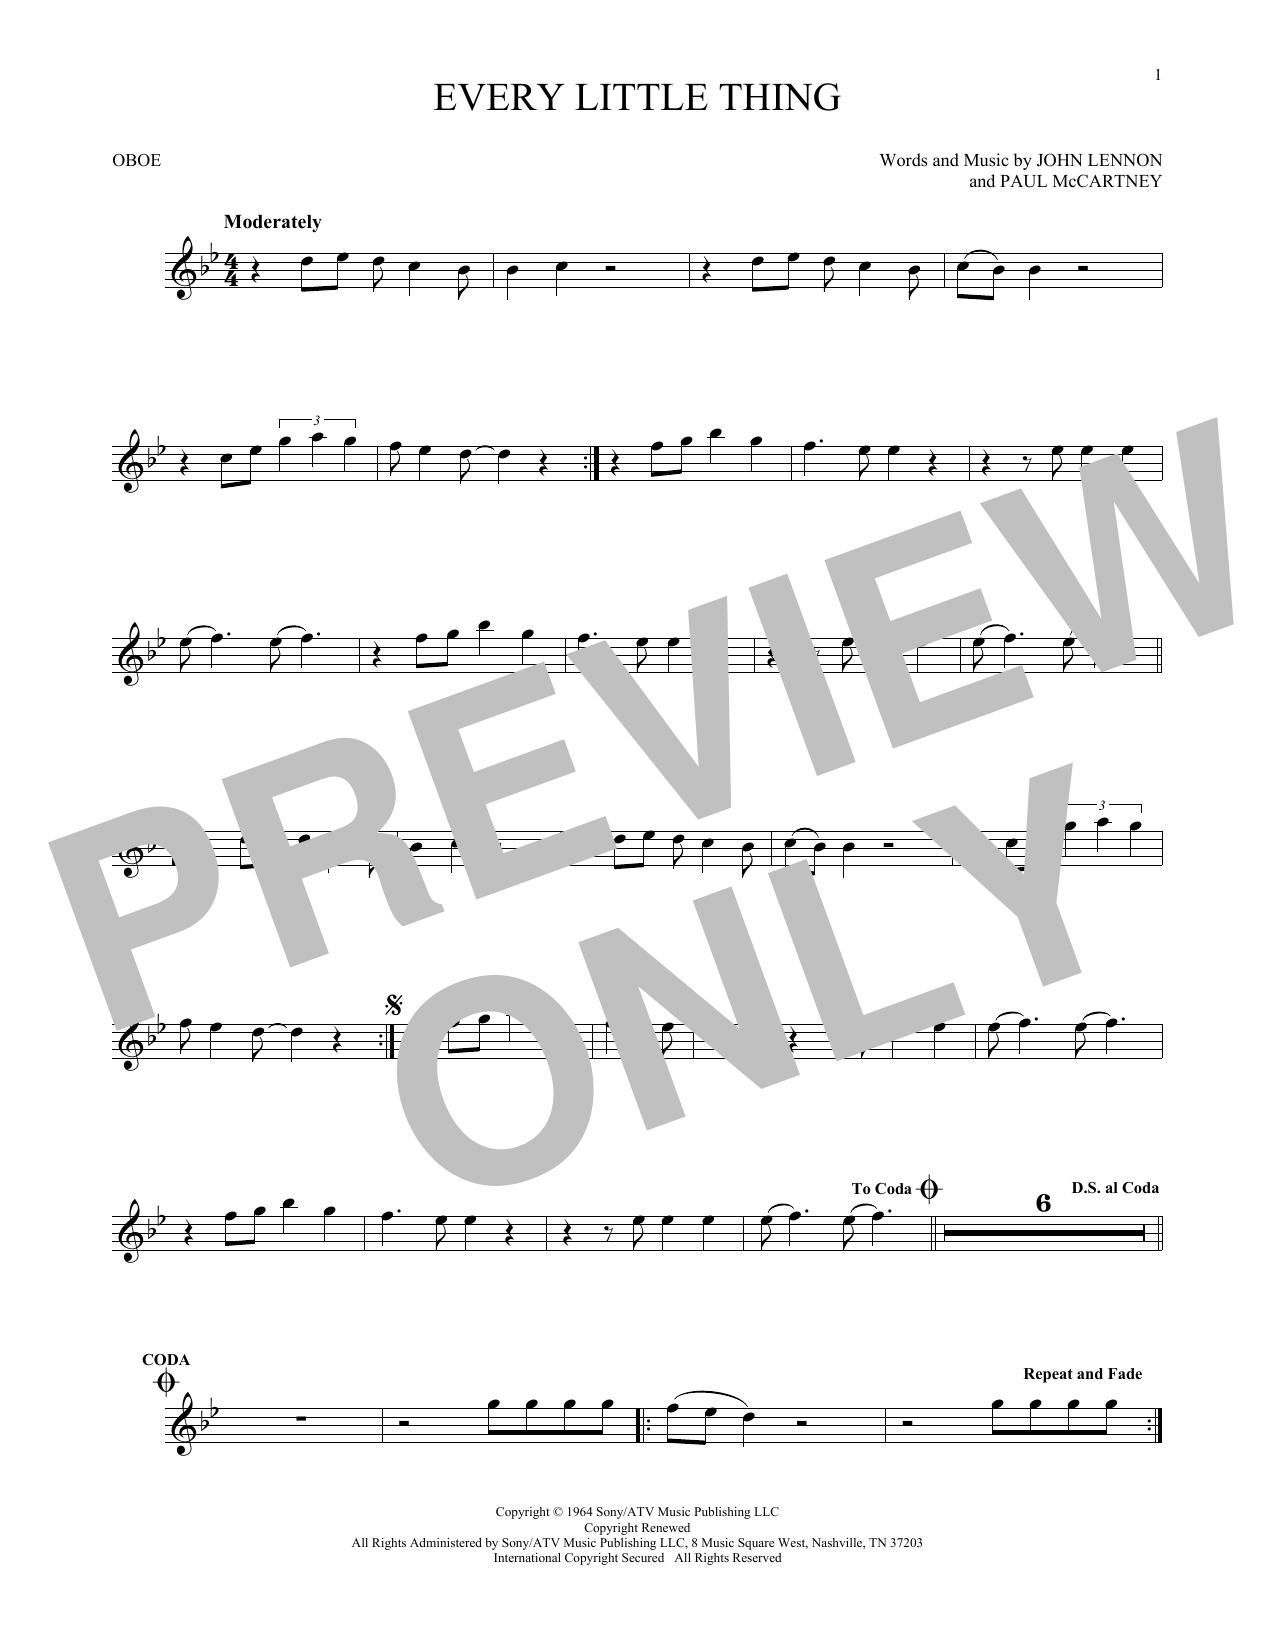 Every Little Thing (Oboe Solo)